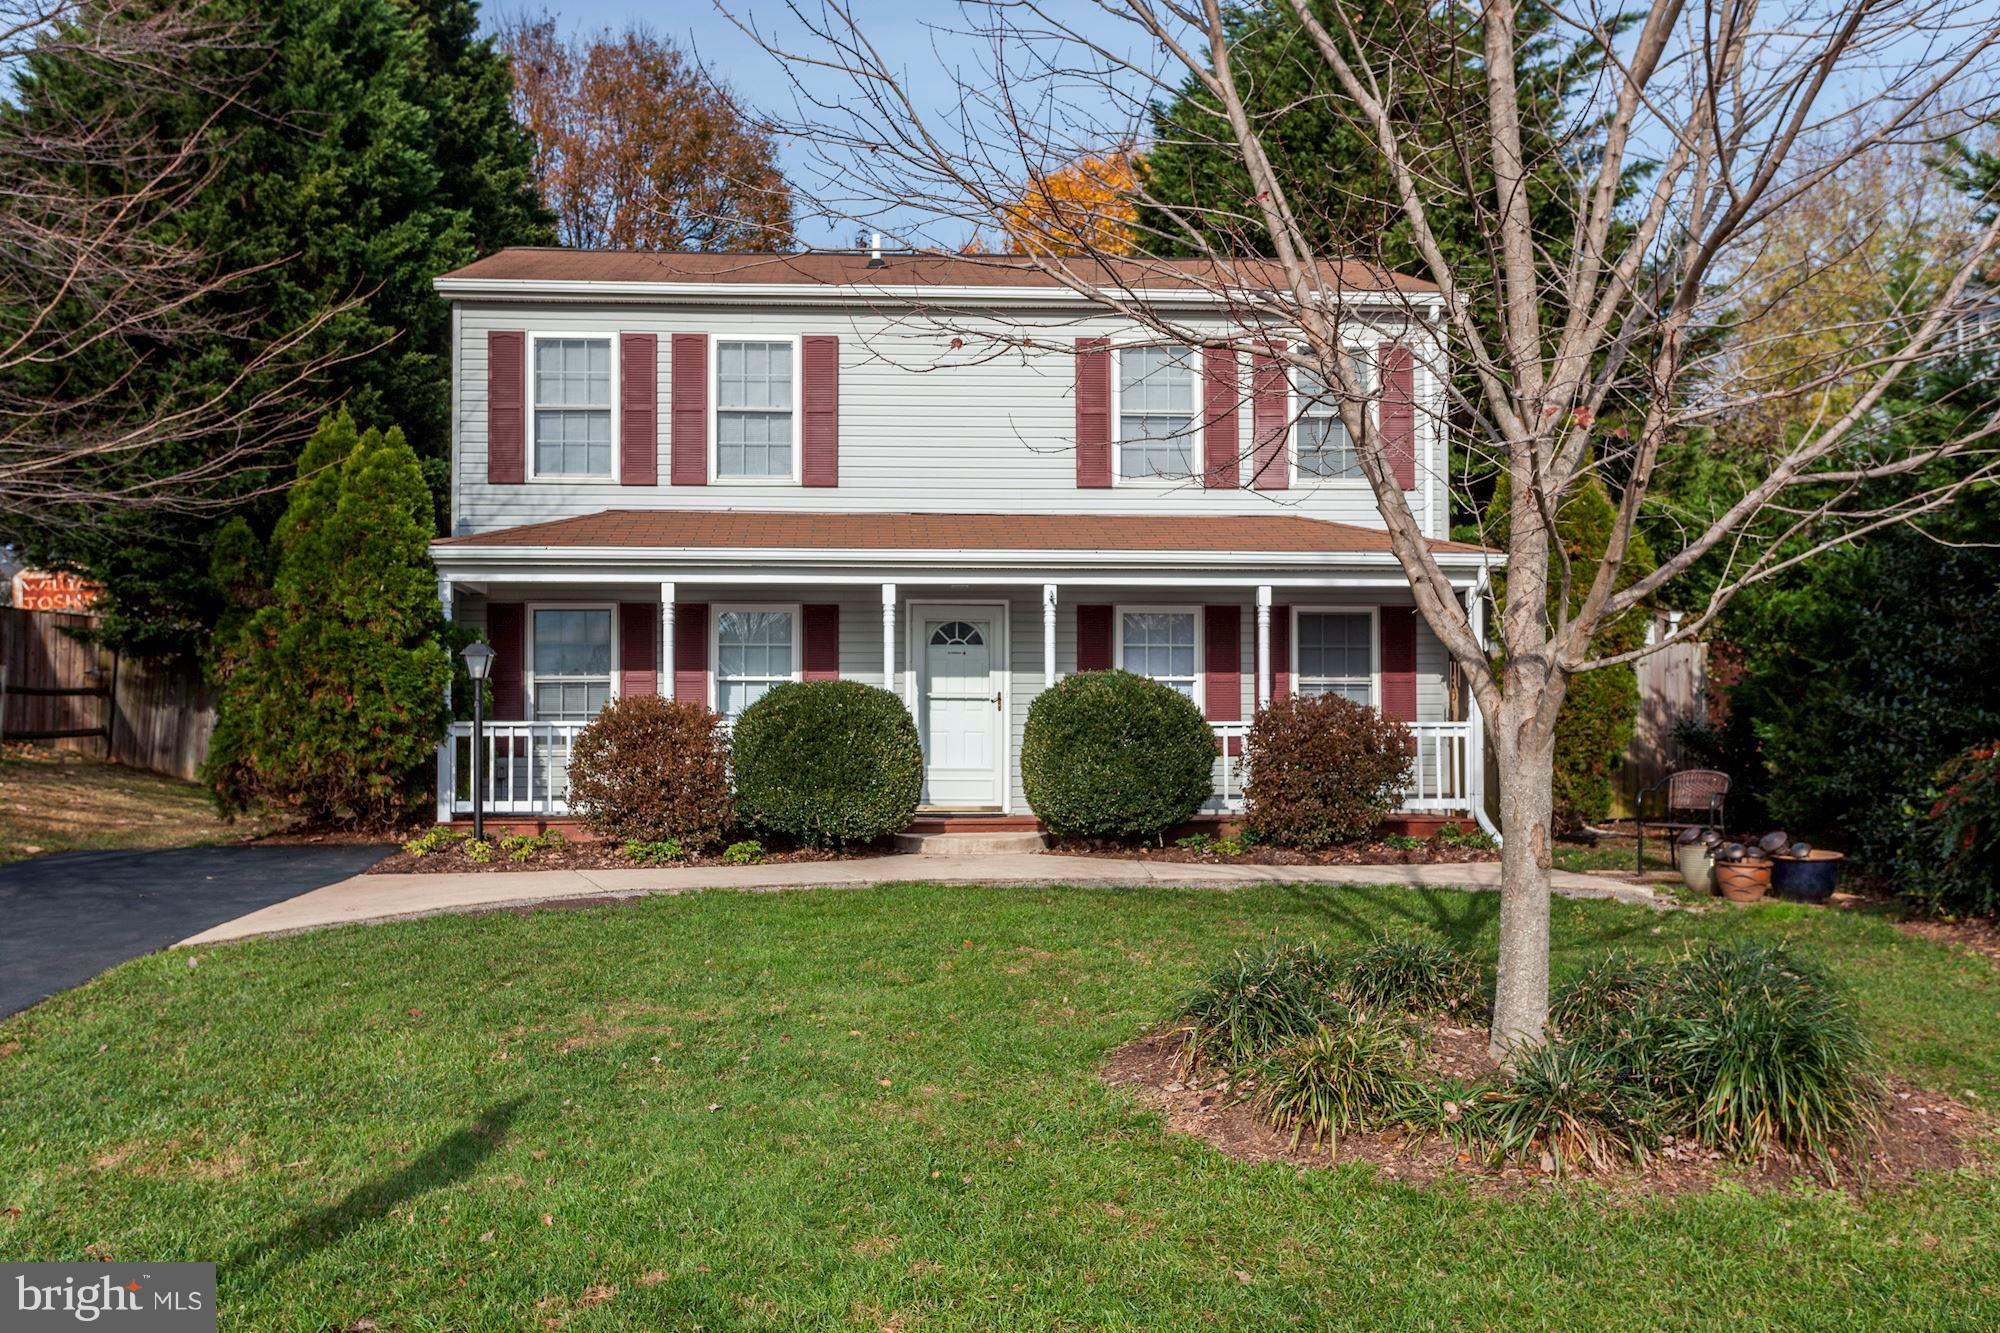 IMPECCABLE CONDITION TOP TO BOTTOM****EXTRAORDINARY MASTER SUITE BATHROOM WITH WALK-IN CLOSET & REMODELED HALL BATH, NEW PAINT & CARPET THROUGHOUT, HARDWOODS IN LIVING ROOM, SPACIOUS OPEN KITCHEN WITH NEWER APPLIANCES, NEW HVAC, IT IS TURN KEY AND READY FOR YOU***GREAT FENCED IN BACKYARD -